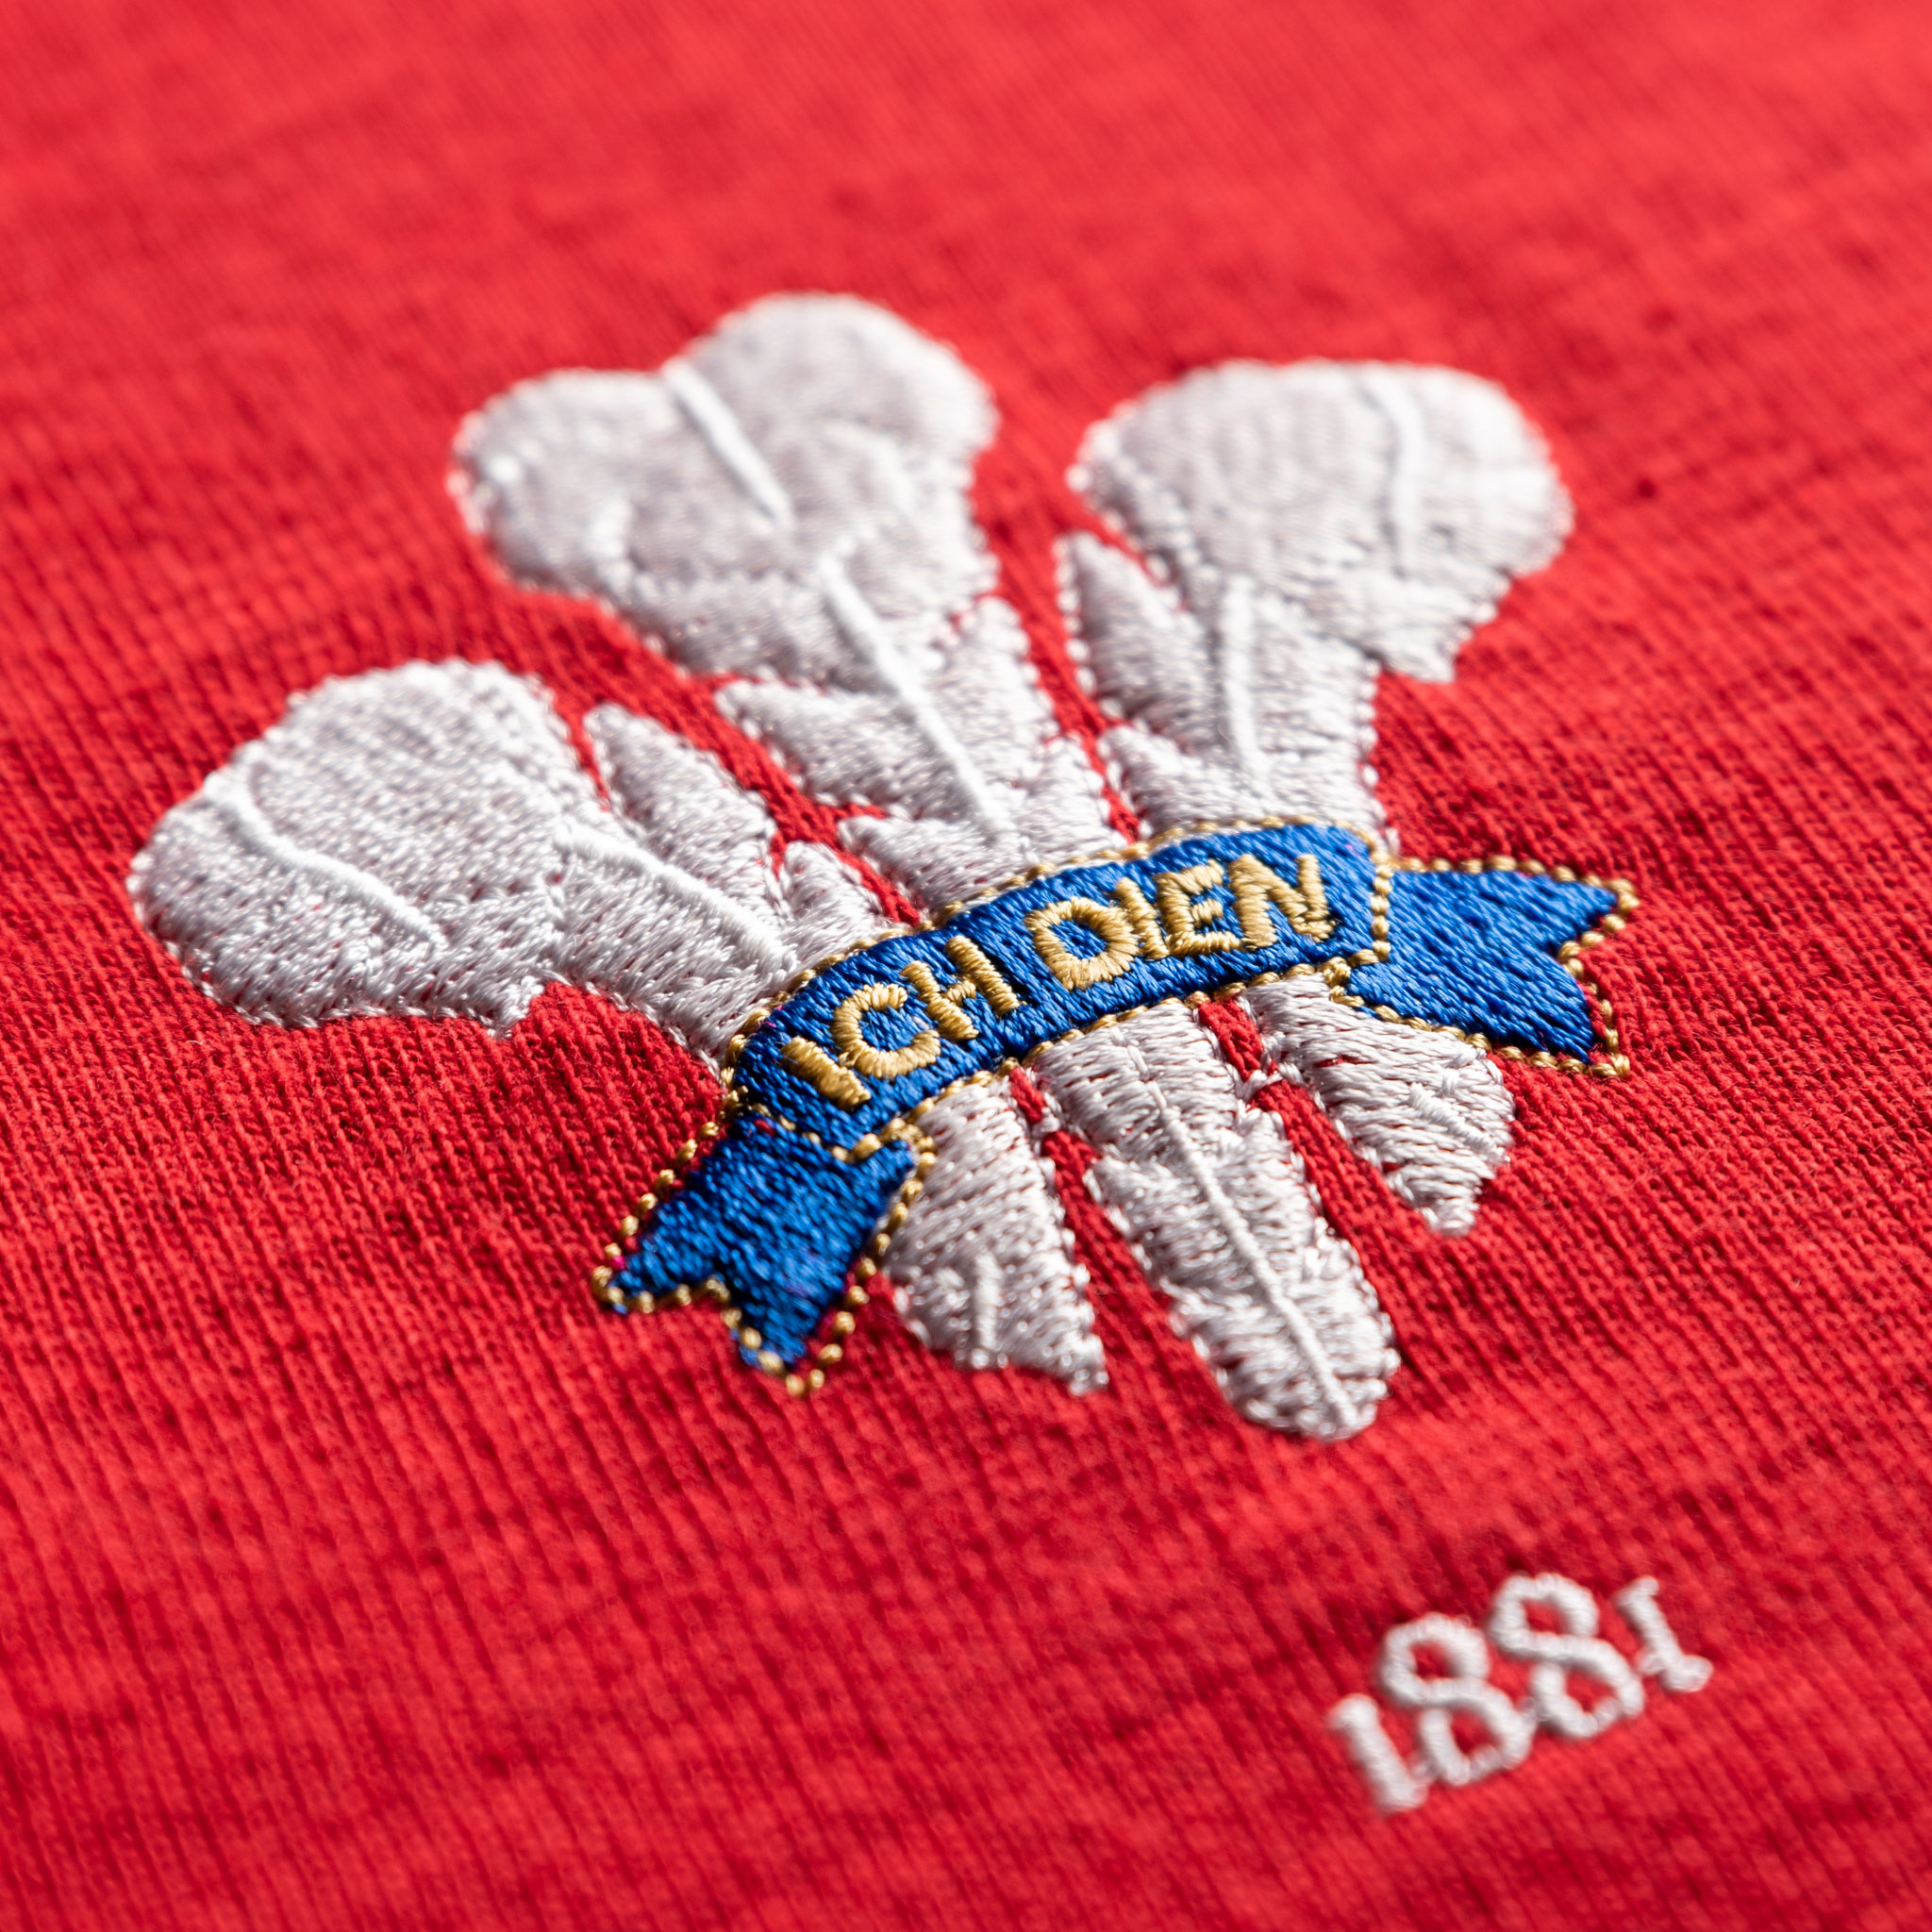 Wales 1881 Vintage Rugby Shirt_logo